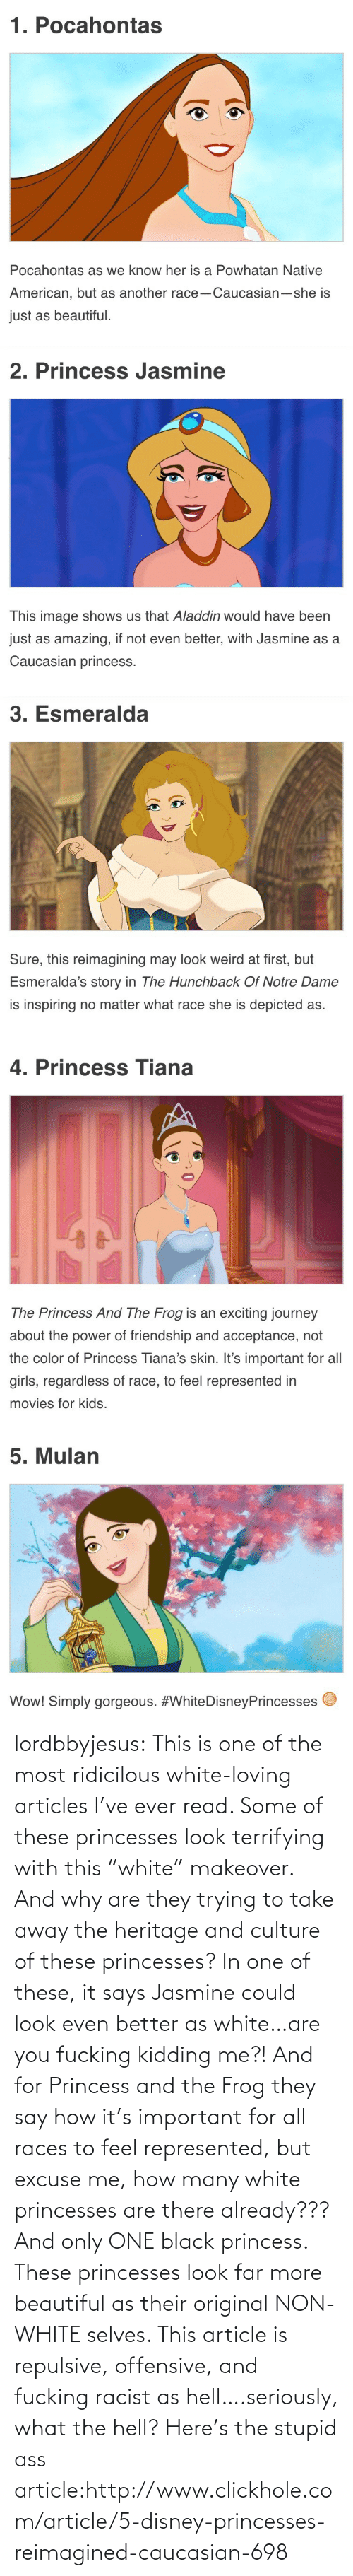 """hunchback: 1. Pocahontas  Pocahontas as we know her is a Powhatan Native  American, but as another race-Caucasian-she is  just as beautiful.   2. Princess Jasmine  This image shows us that Aladdin would have been  just as amazing, if not even better, with Jasmine as a  Caucasian princess.   3. Esmeralda  Sure, this reimagining may look weird at first, but  Esmeralda's story in The Hunchback Of Notre Dame  is inspiring no matter what race she is depicted as.   4. Princess Tiana  The Princess And The Frog is an exciting journey  about the power of friendship and acceptance, not  the color of Princess Tiana's skin. It's important for all  girls, regardless of race, to feel represented in  movies for kids.   5. Mulan  Wow! Simply gorgeous. lordbbyjesus:  This is one of the most ridicilous white-loving articles I've ever read. Some of these princesses look terrifying with this """"white"""" makeover. And why are they trying to take away the heritage and culture of these princesses? In one of these, it says Jasmine could look even better as white…are you fucking kidding me?! And for Princess and the Frog they say how it's important for all races to feel represented, but excuse me, how many white princesses are there already??? And only ONE black princess. These princesses look far more beautiful as their original NON-WHITE selves. This article is repulsive, offensive, and fucking racist as hell….seriously, what the hell?   Here's the stupid ass article:http://www.clickhole.com/article/5-disney-princesses-reimagined-caucasian-698"""